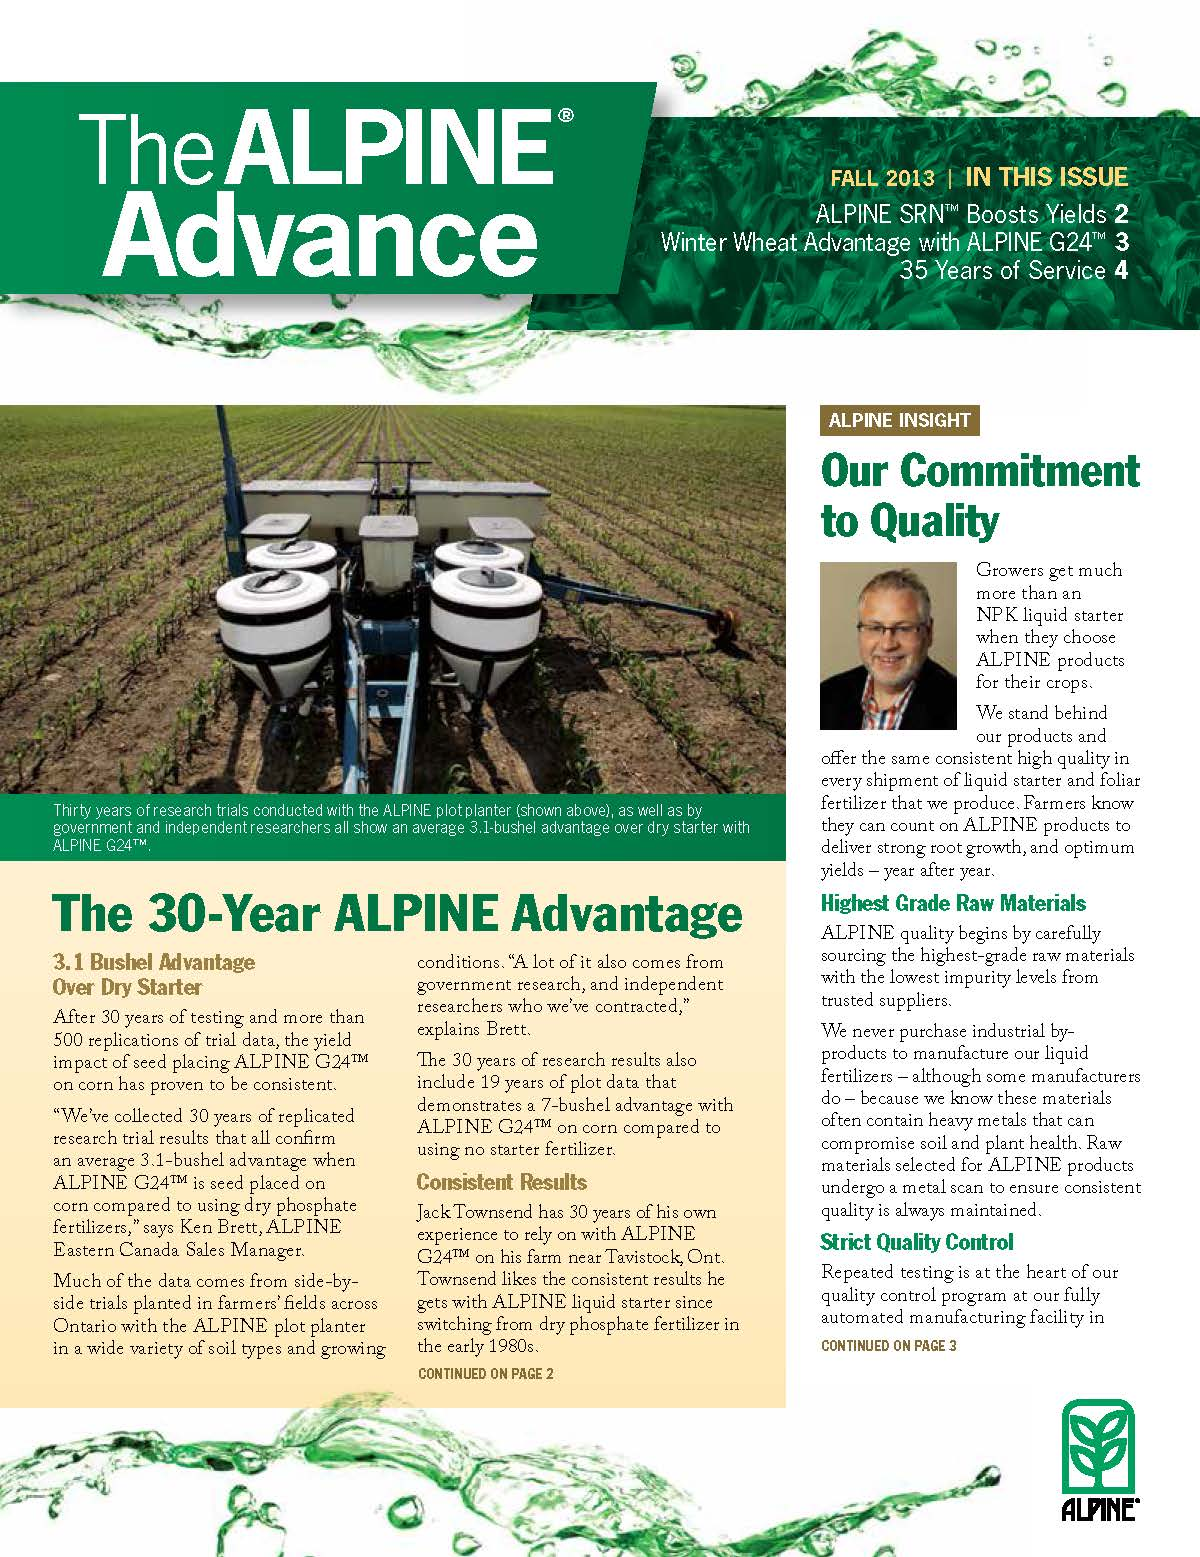 The Alpine Advance Fall 2013